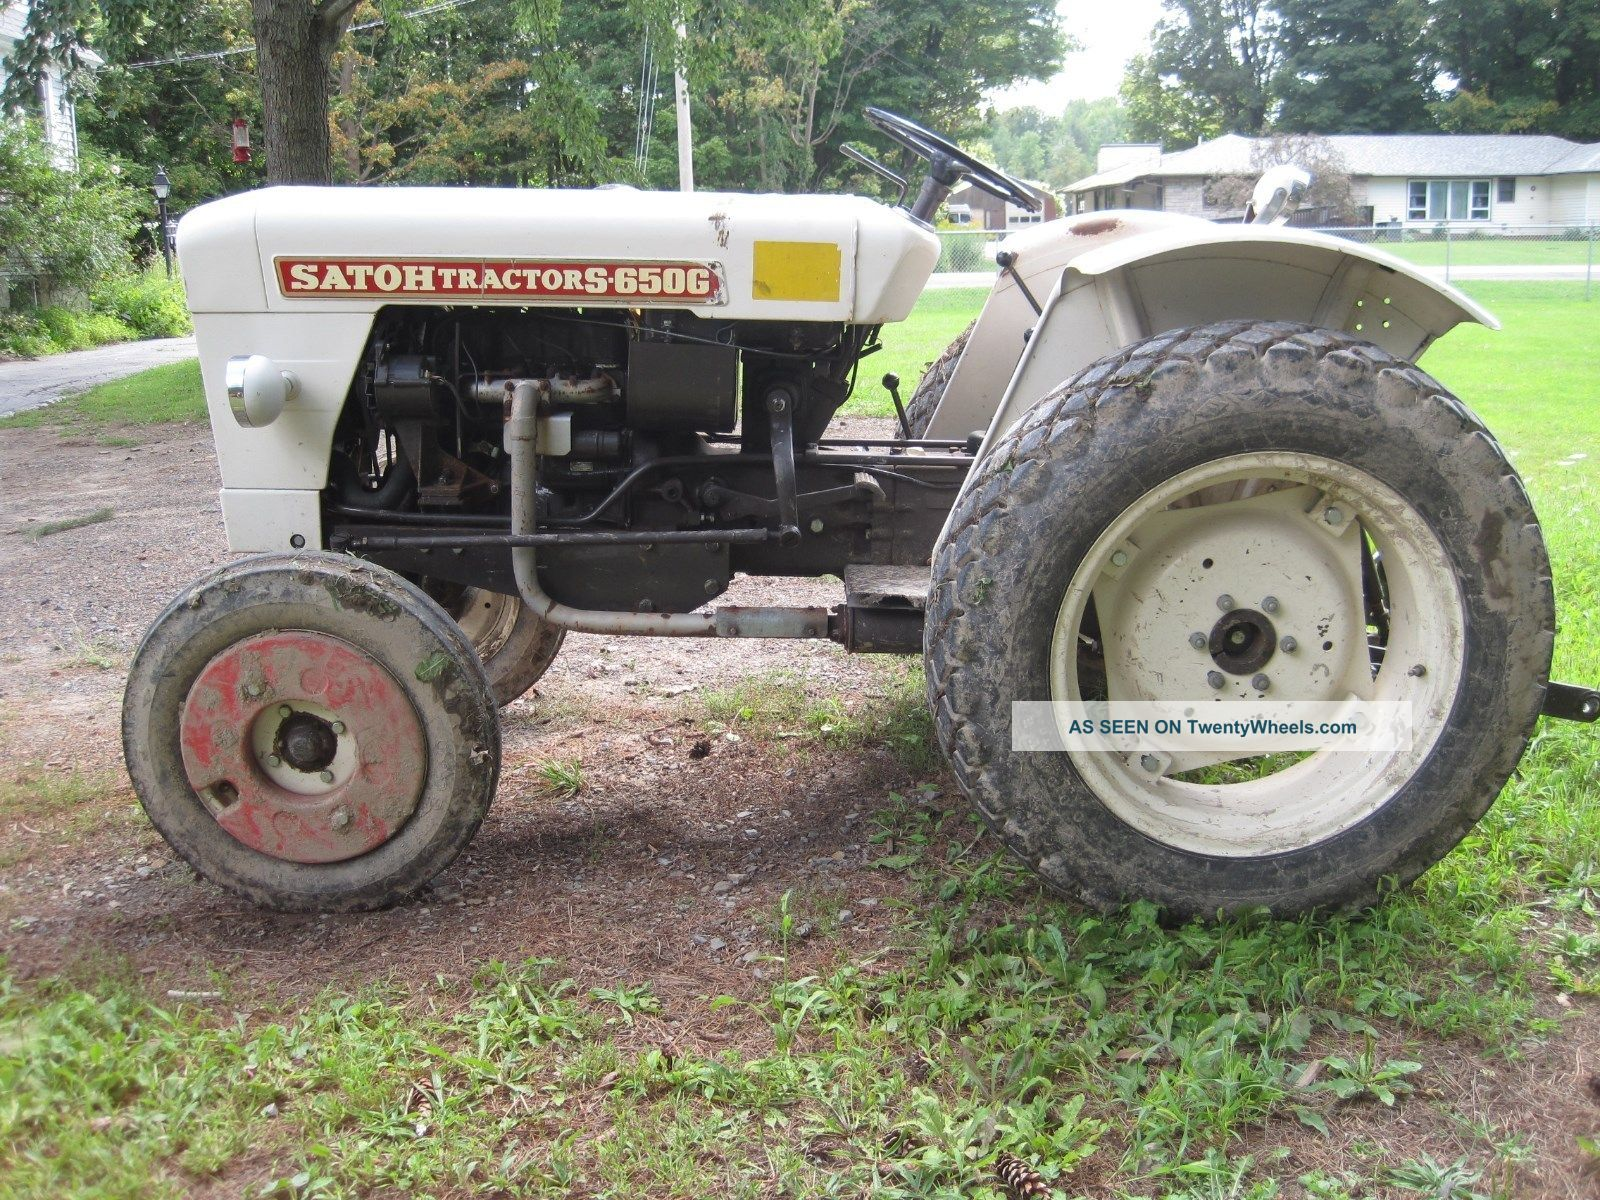 Satoh S650g Tractor 512 Hours Tractors photo 2